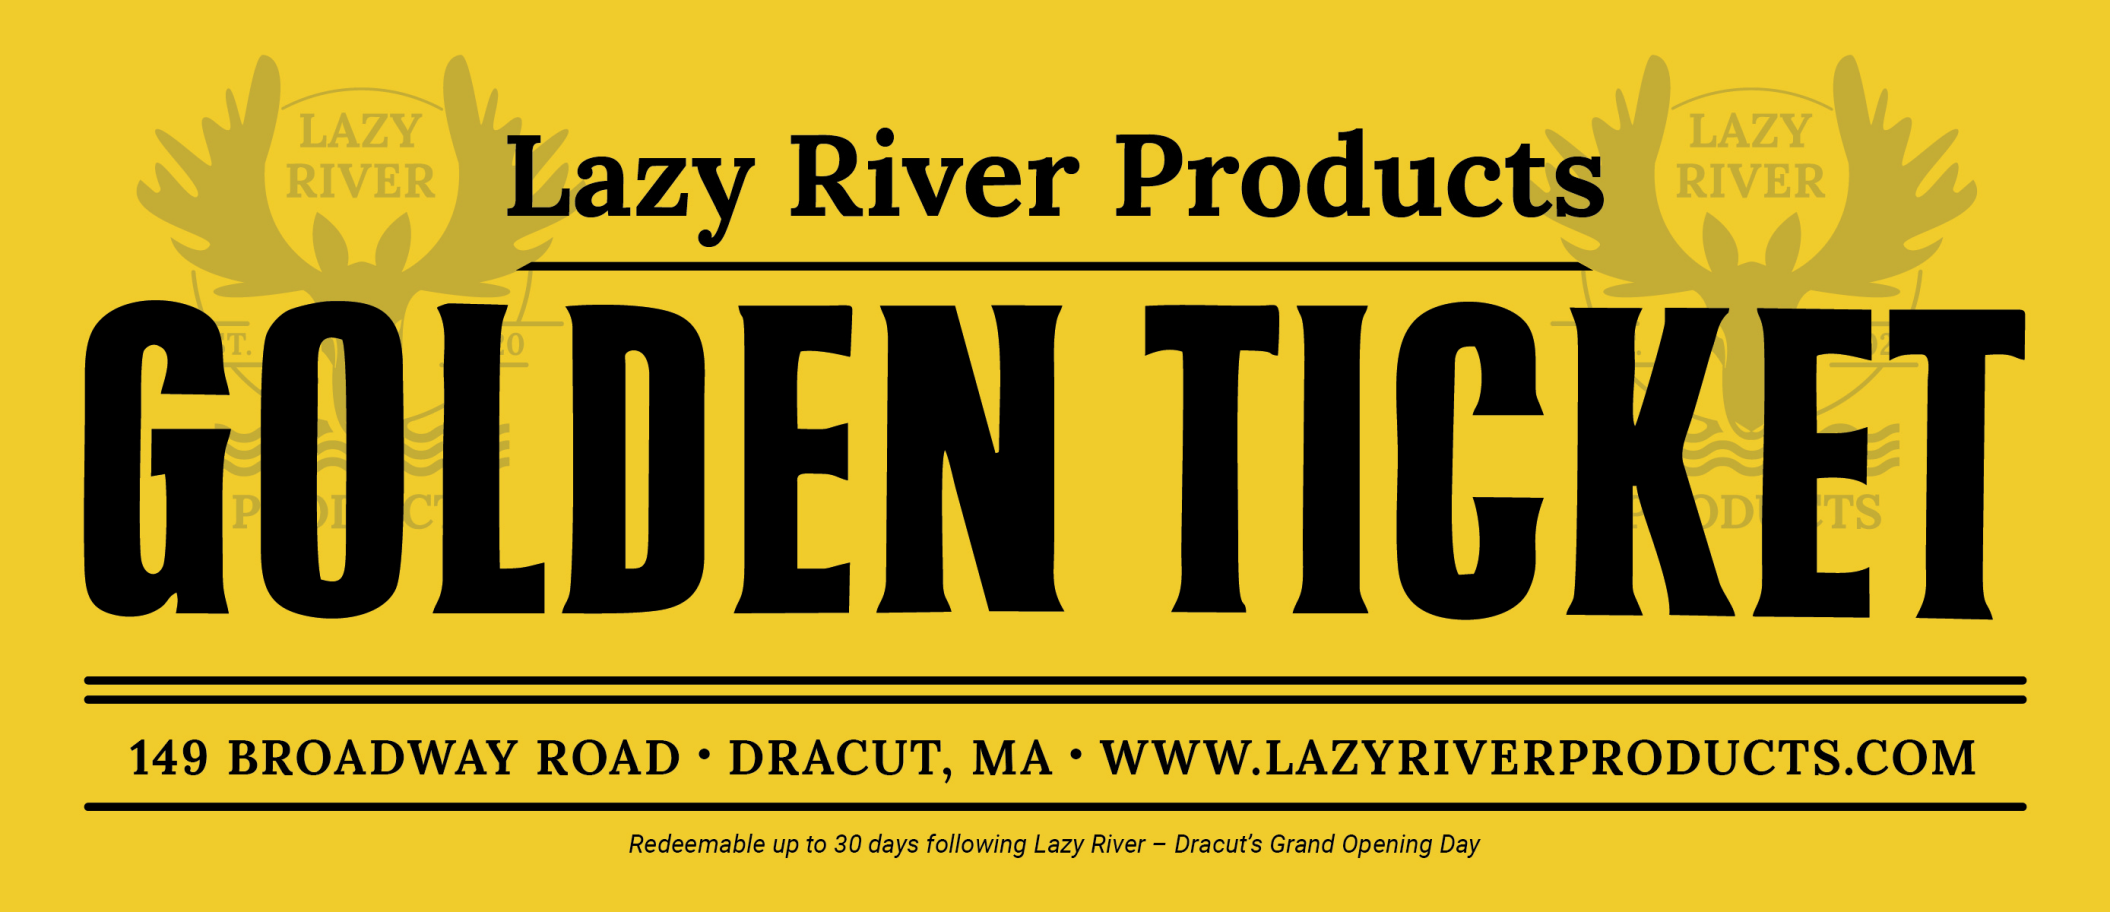 Lazy River Products Golden Ticket